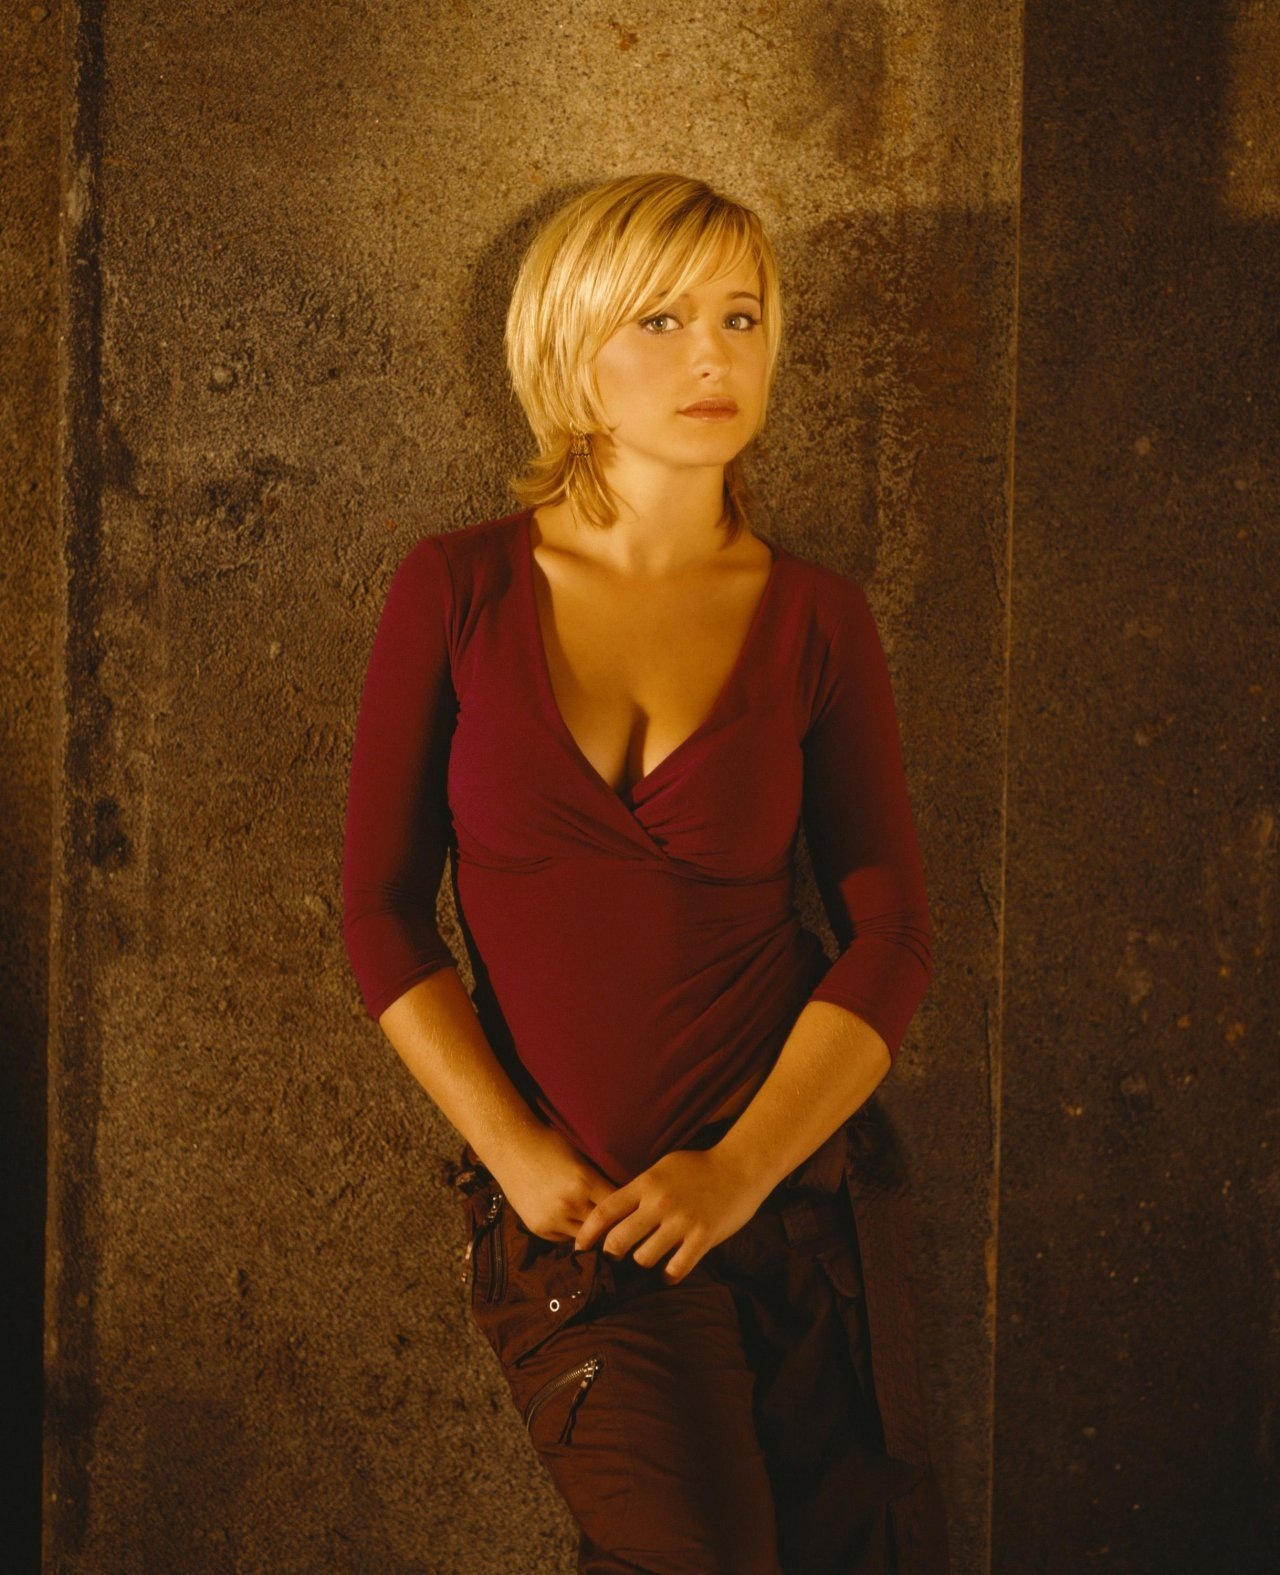 Allison Mack wallpapers 1193 Best Allison Mack pictures 1280x1575